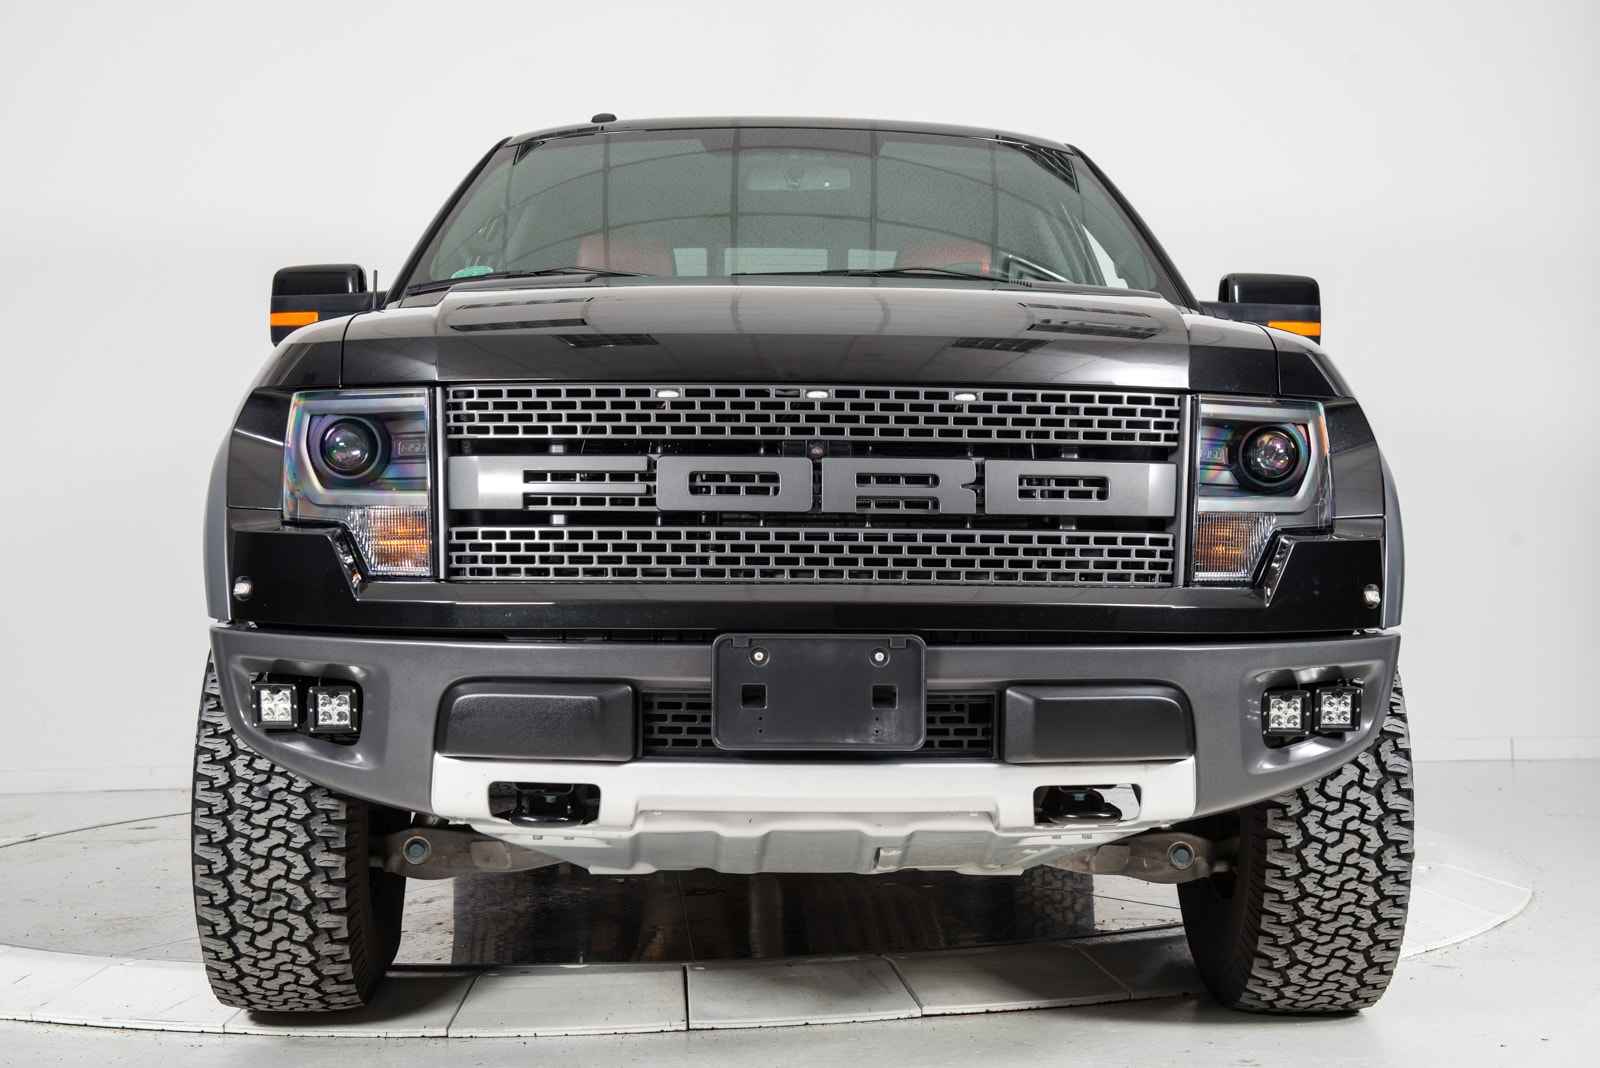 2014 ford f 150 svt raptor crew cab short bed truck for sale in plainview - Black Ford F150 Raptor 2014